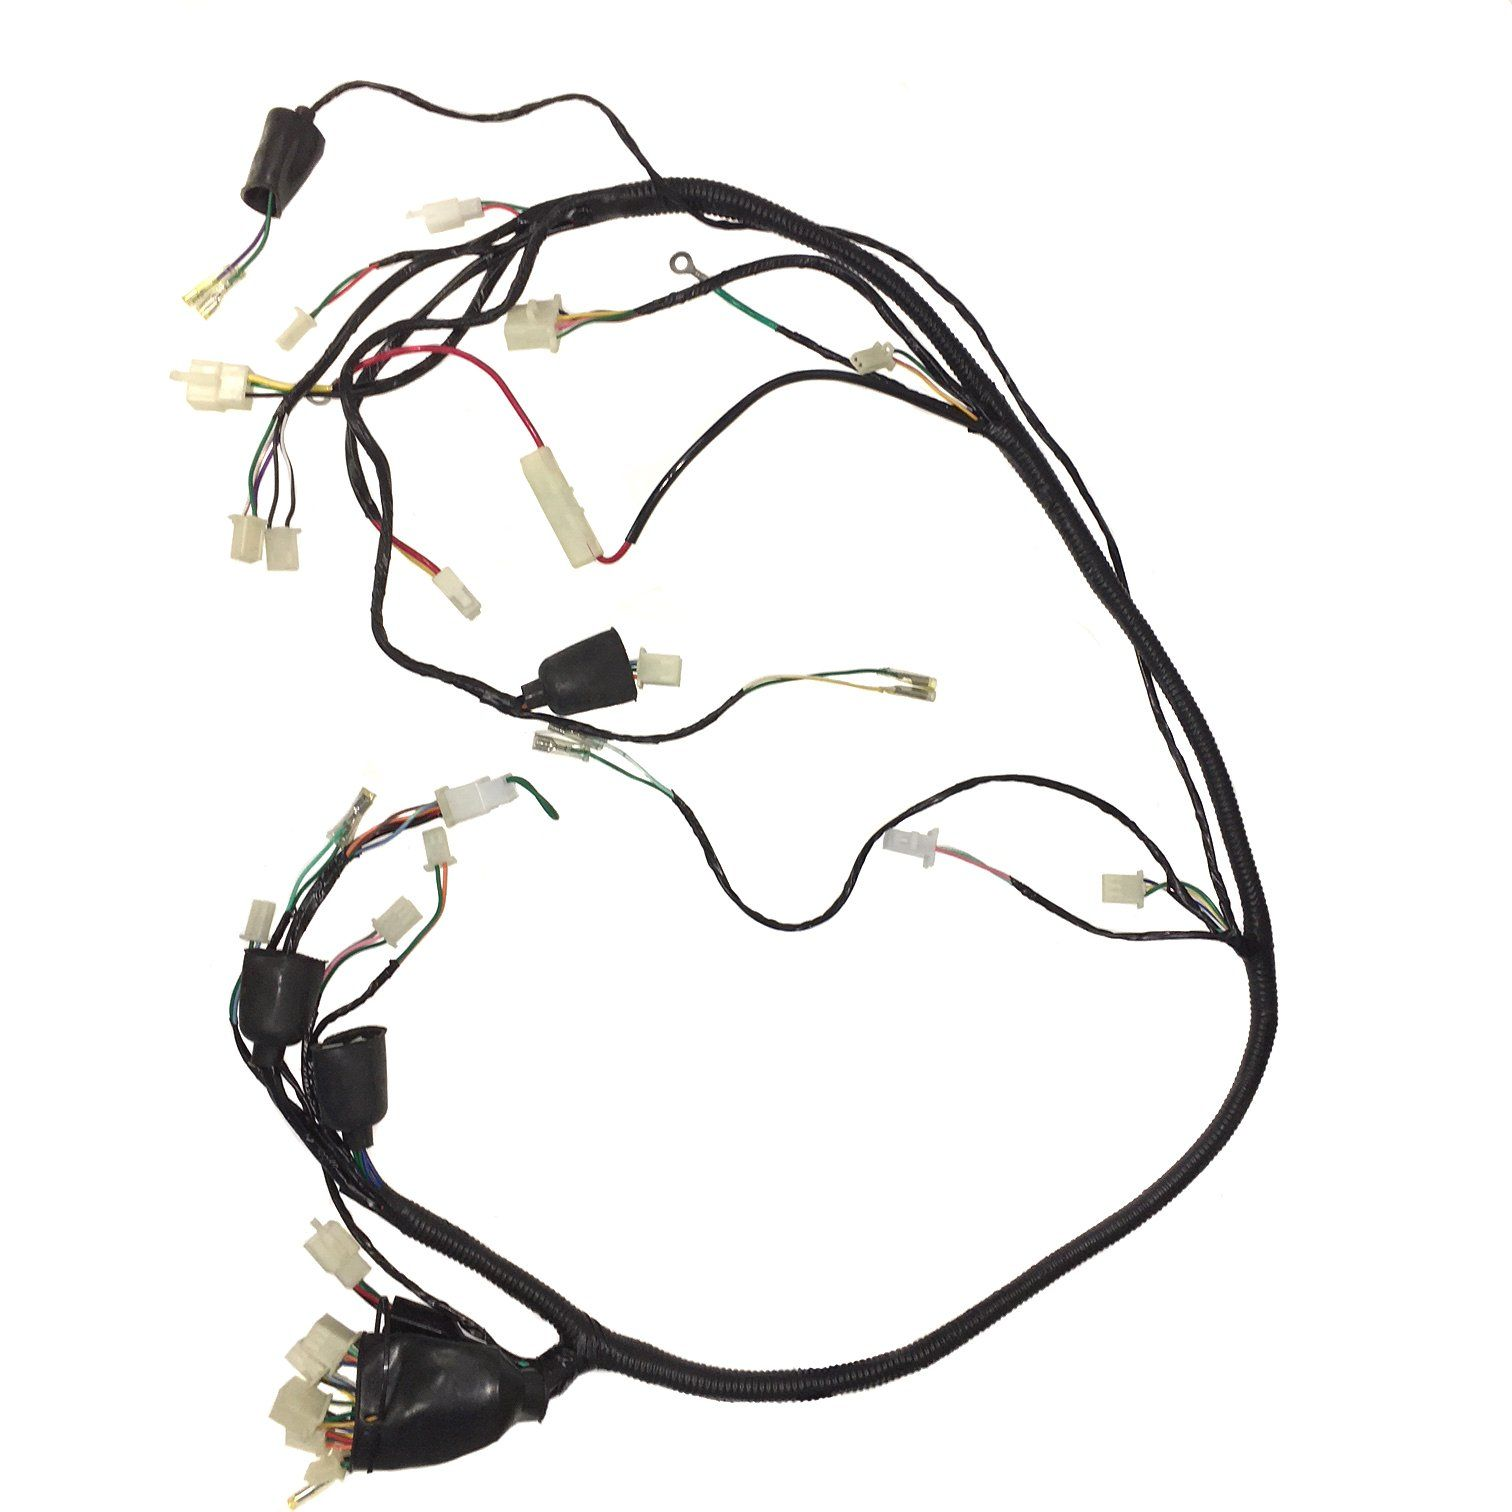 Jonway Scooter Wiring Harness Web About Diagram Rhode Island For Yyzx25019001 250cc Yy250t Vmc Rh Vmcchineseparts Com Parts Usa